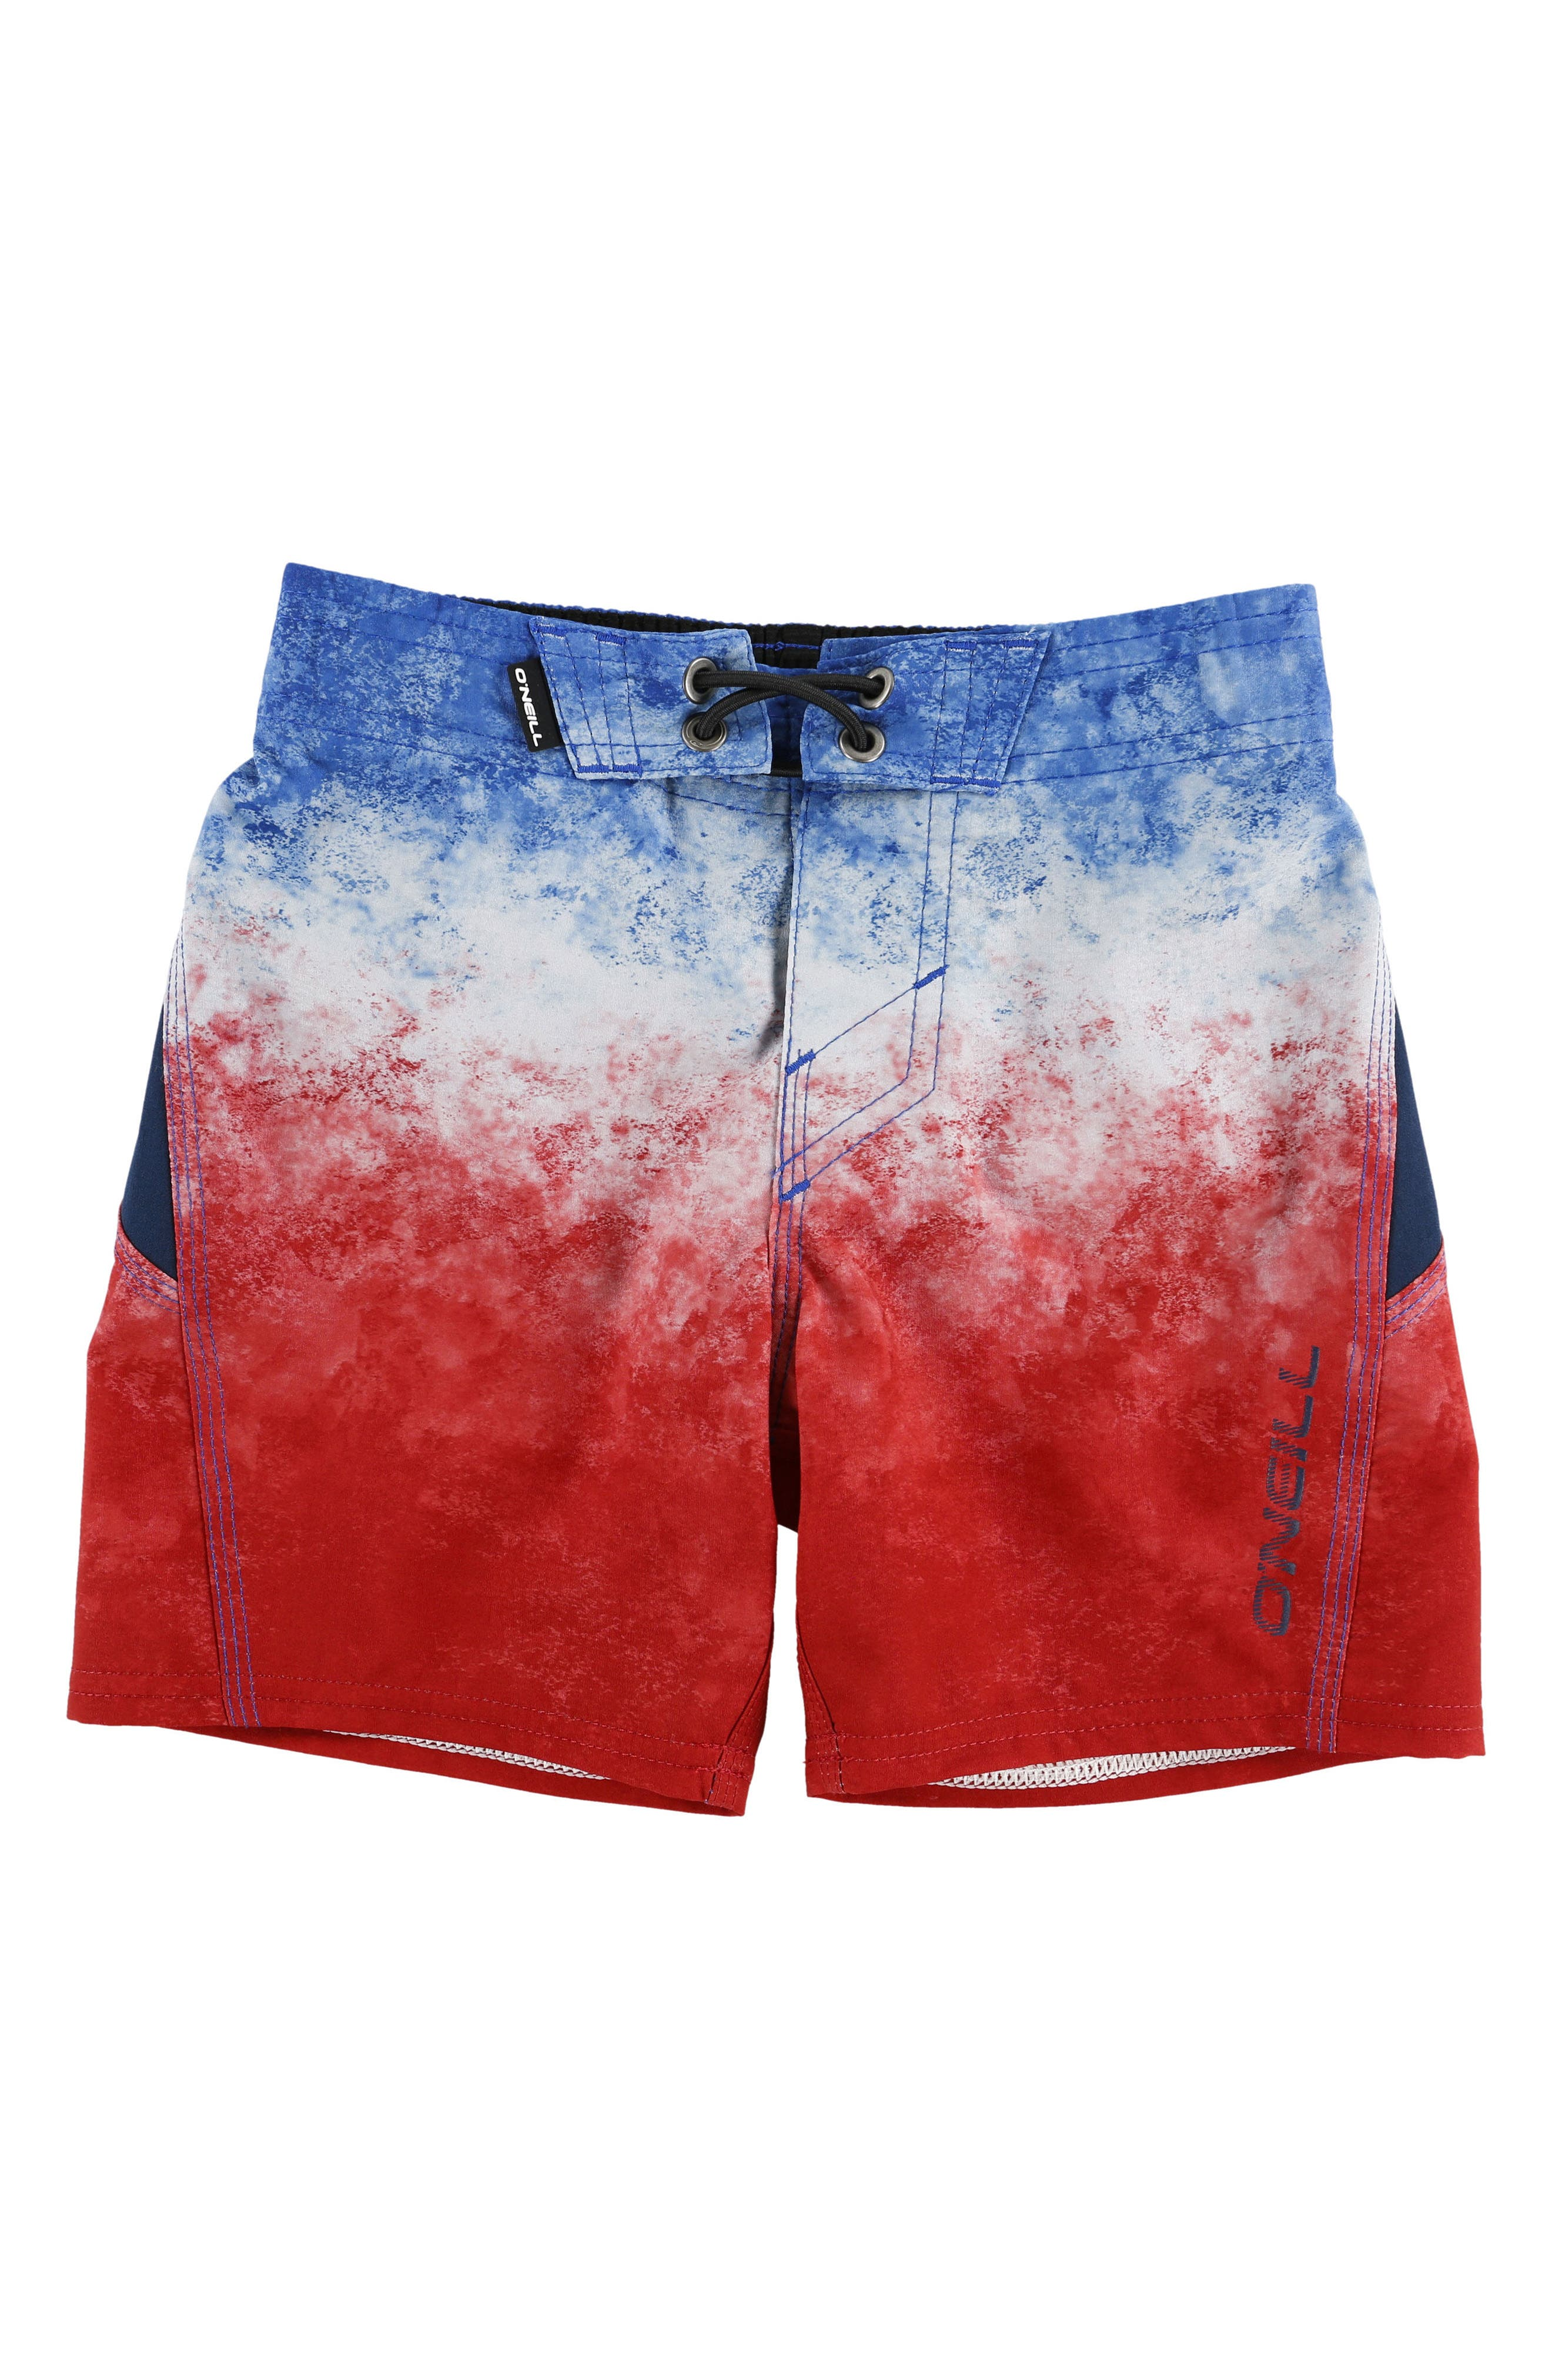 Sneakyfreak Surface Board Shorts,                         Main,                         color, RED WHITE BLUE